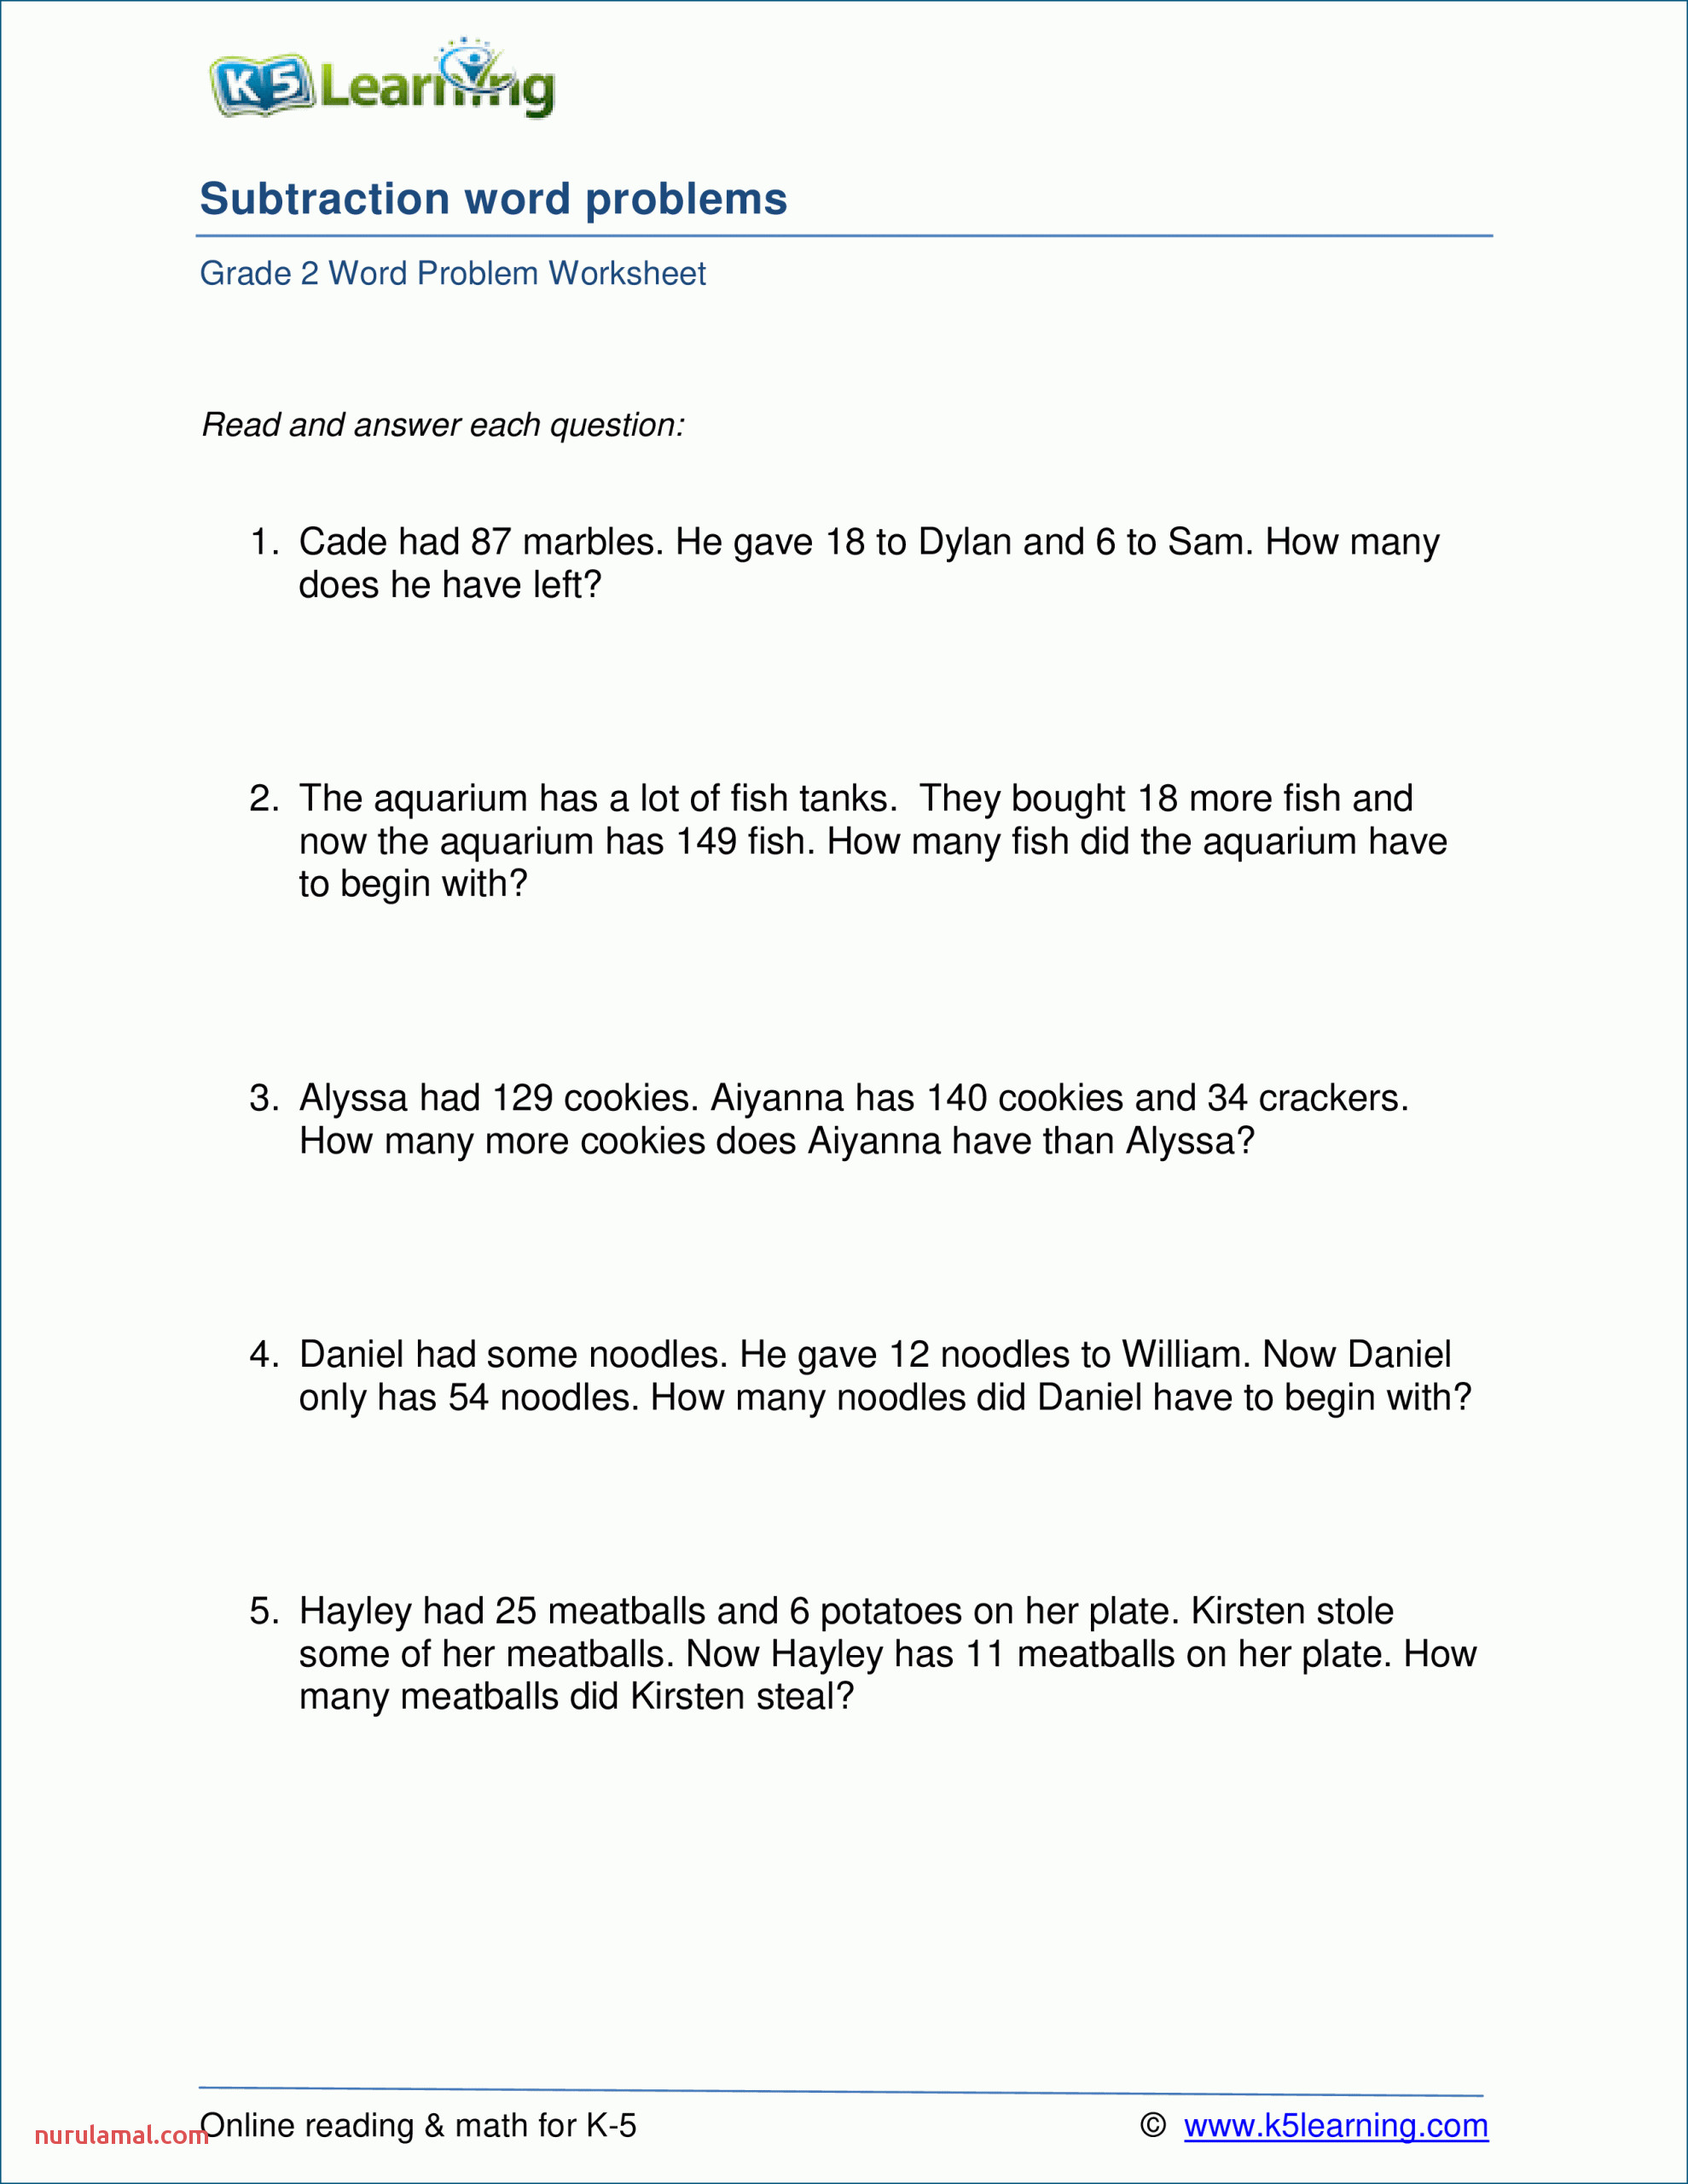 2nd grade math word problem worksheets free and printable doing words for worksheet ideas subtraction problems scaled